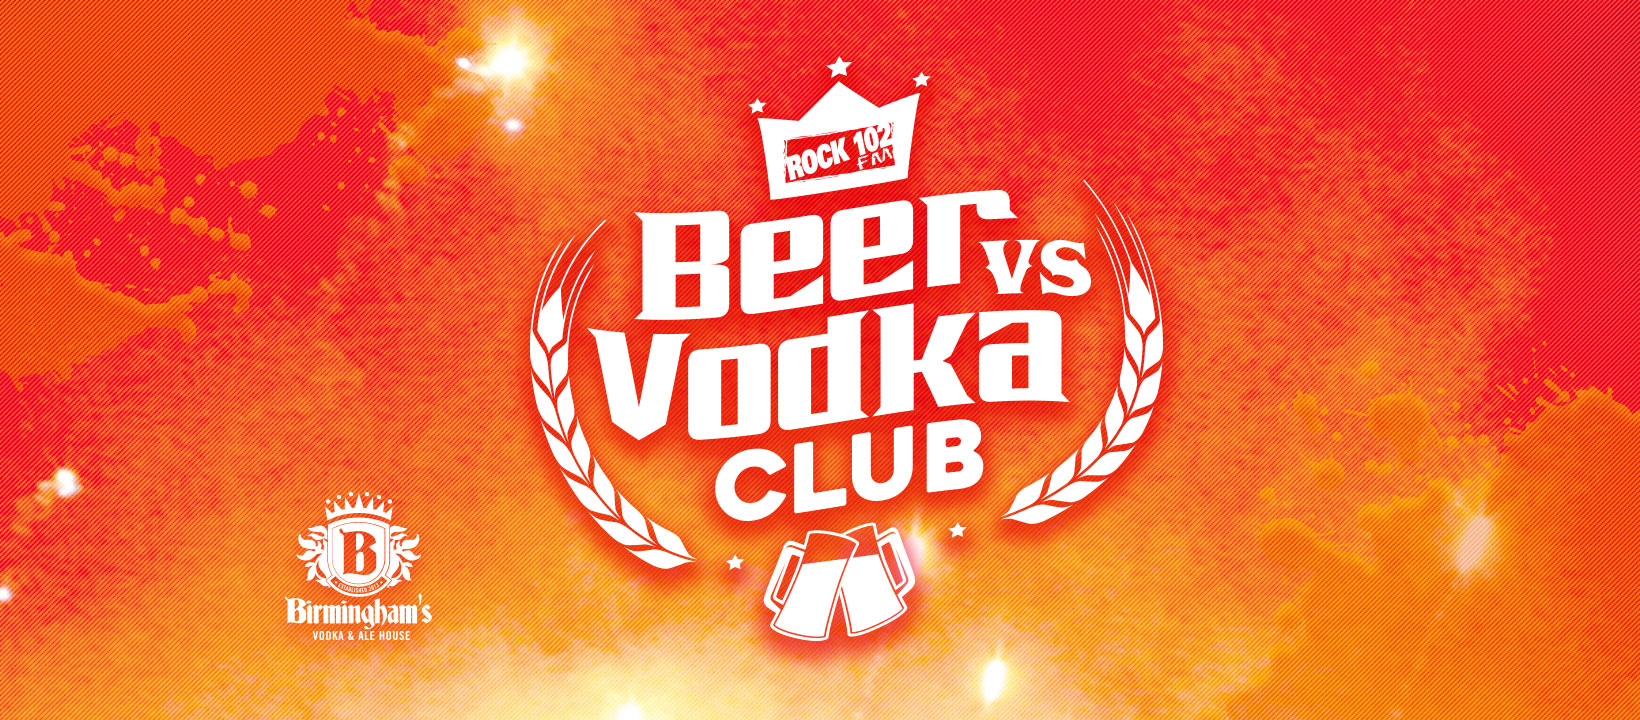 Rock 102's Beer vs Vodka Club at Birmingham's Vodka and Ale House